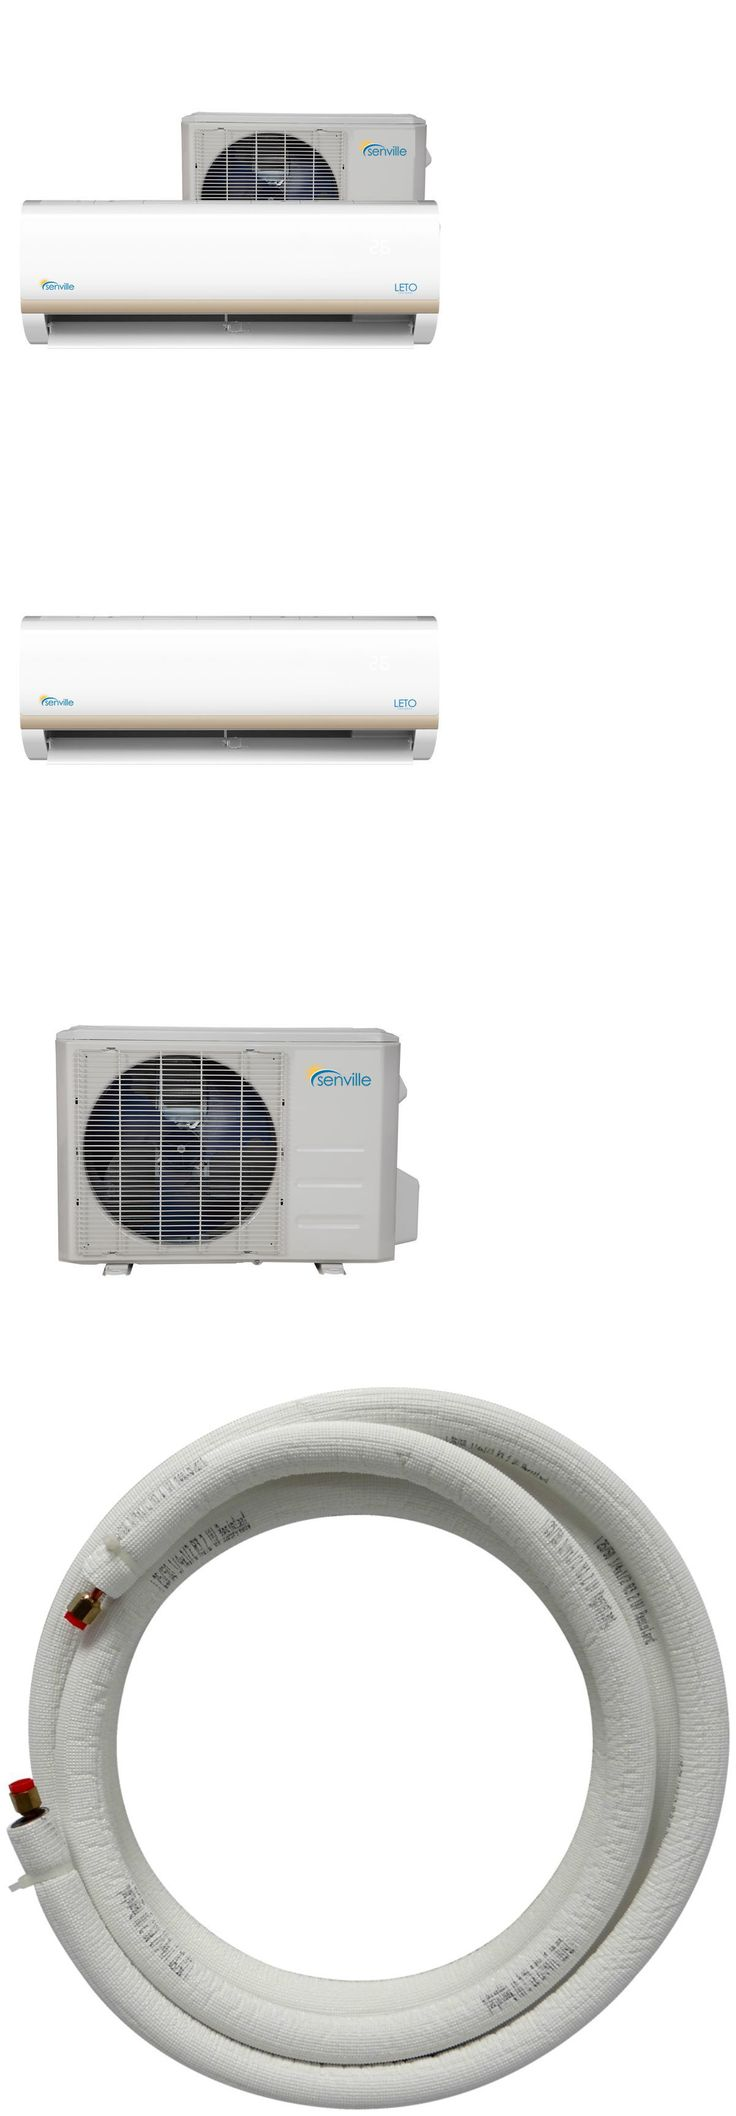 Air Conditioners 69202: 12000 Btu Ductless Air Conditioner With Mini Split Heat Pump 110V Dc Inverter -> BUY IT NOW ONLY: $645.95 on eBay!